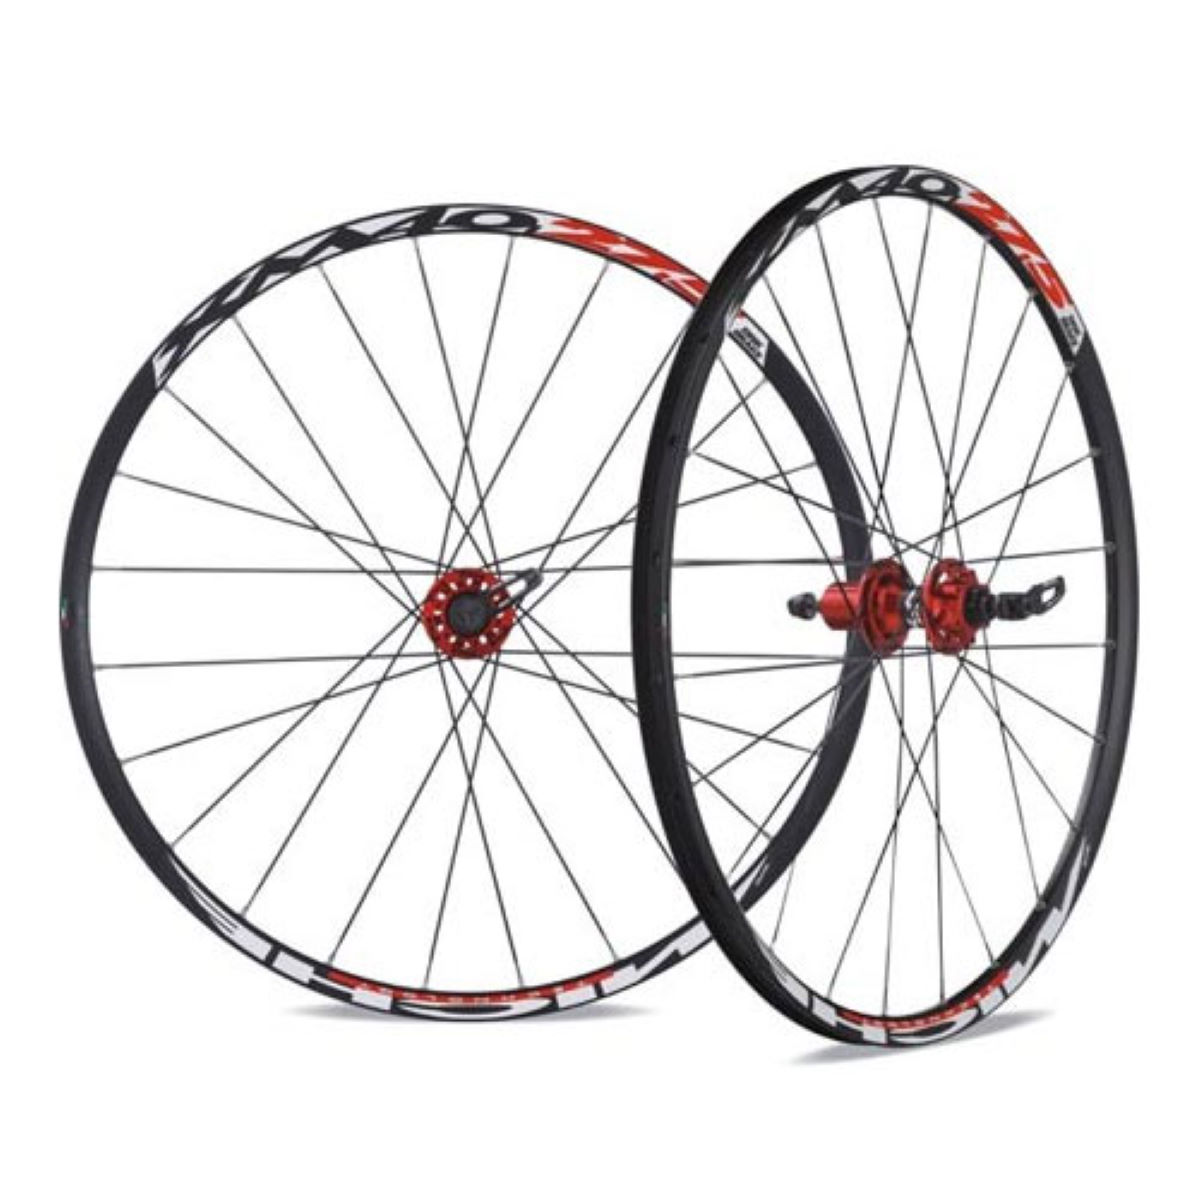 Miche XM 40 650b Disc Wheelset